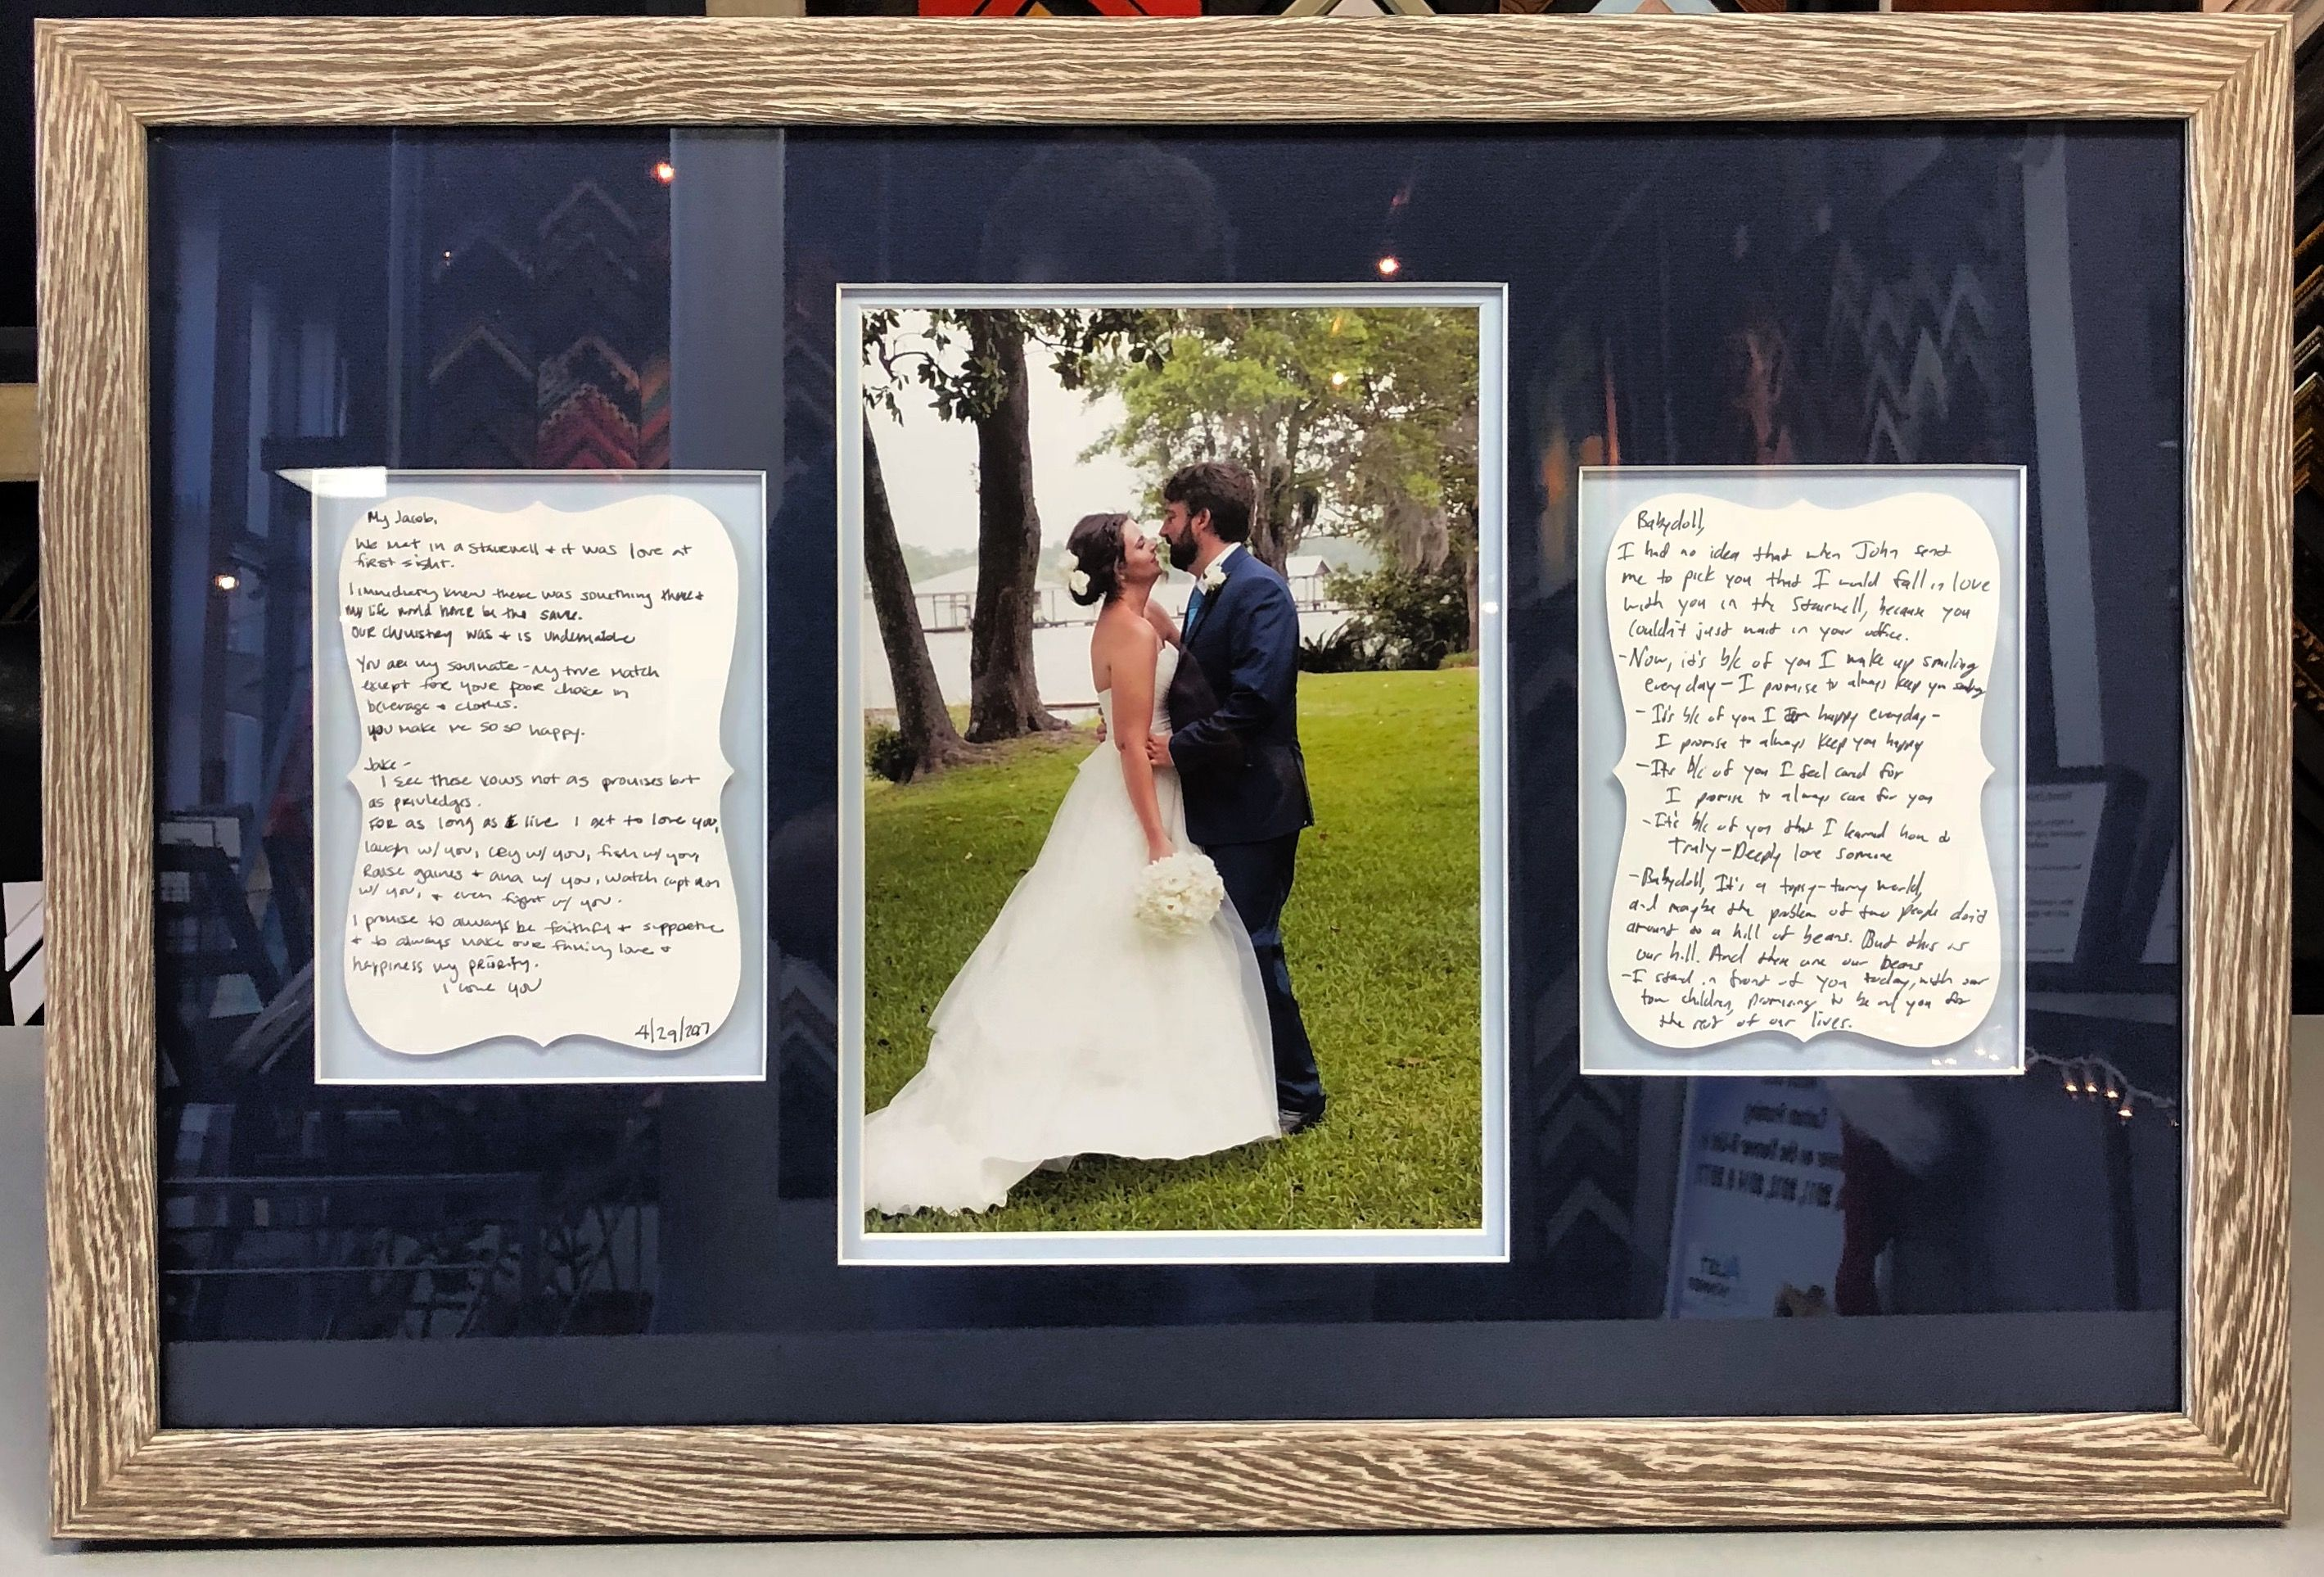 Custom Framed Wedding Vows And Photo Using Exclusively